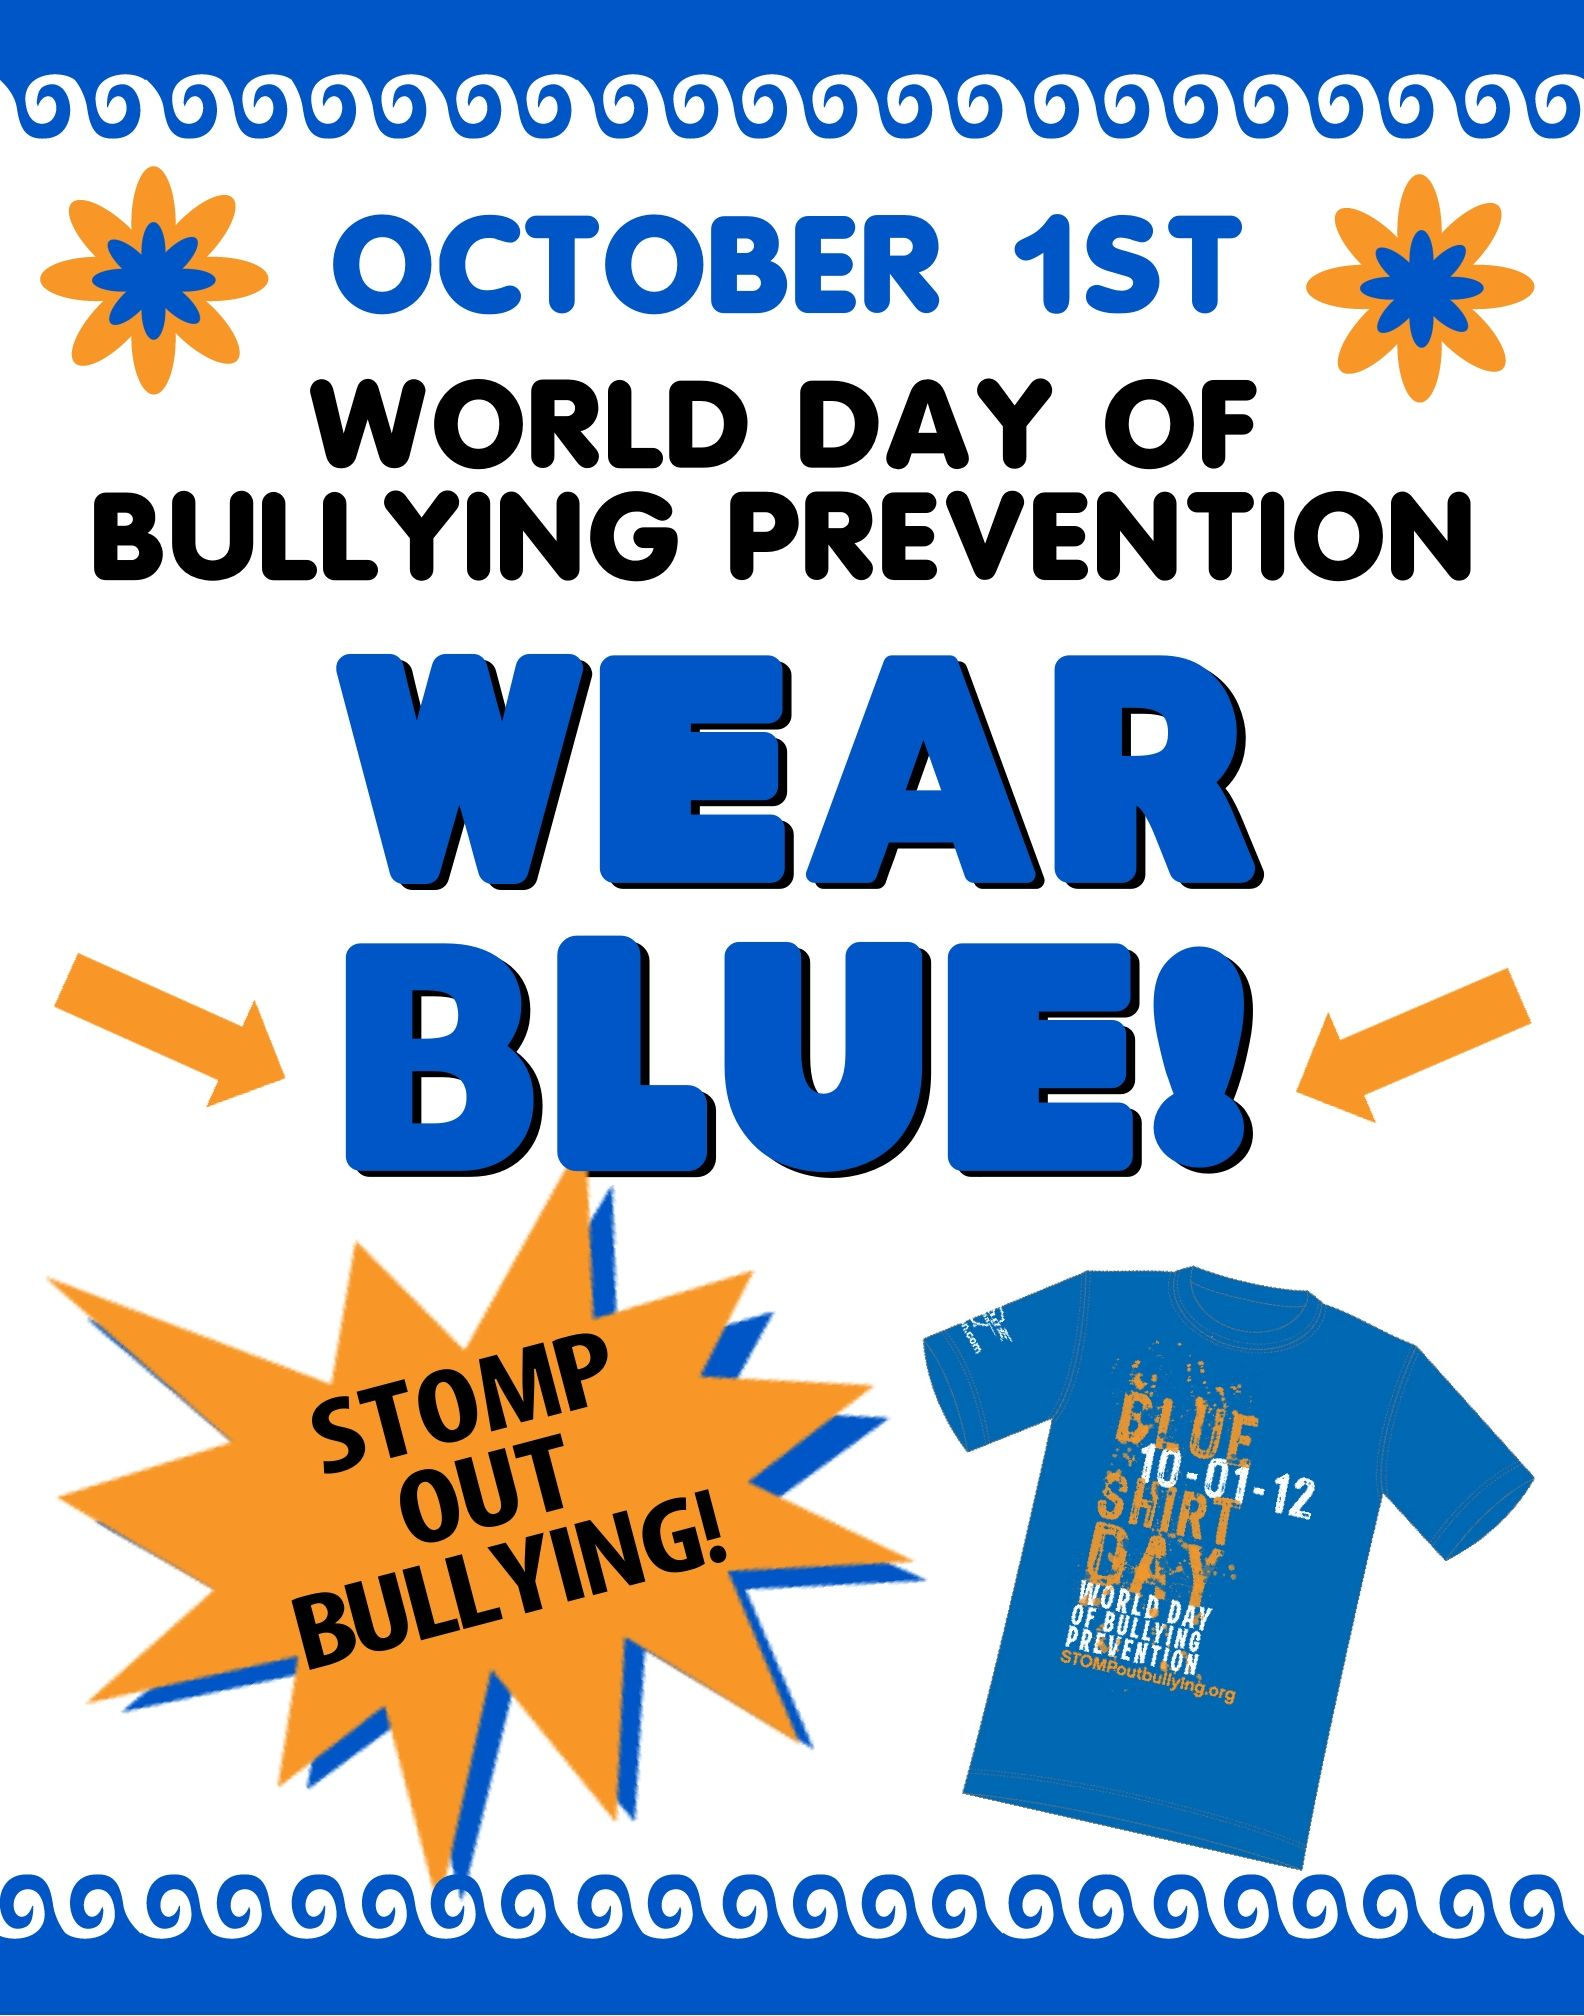 World Bullying Prevention Day Stomp Out Bullying